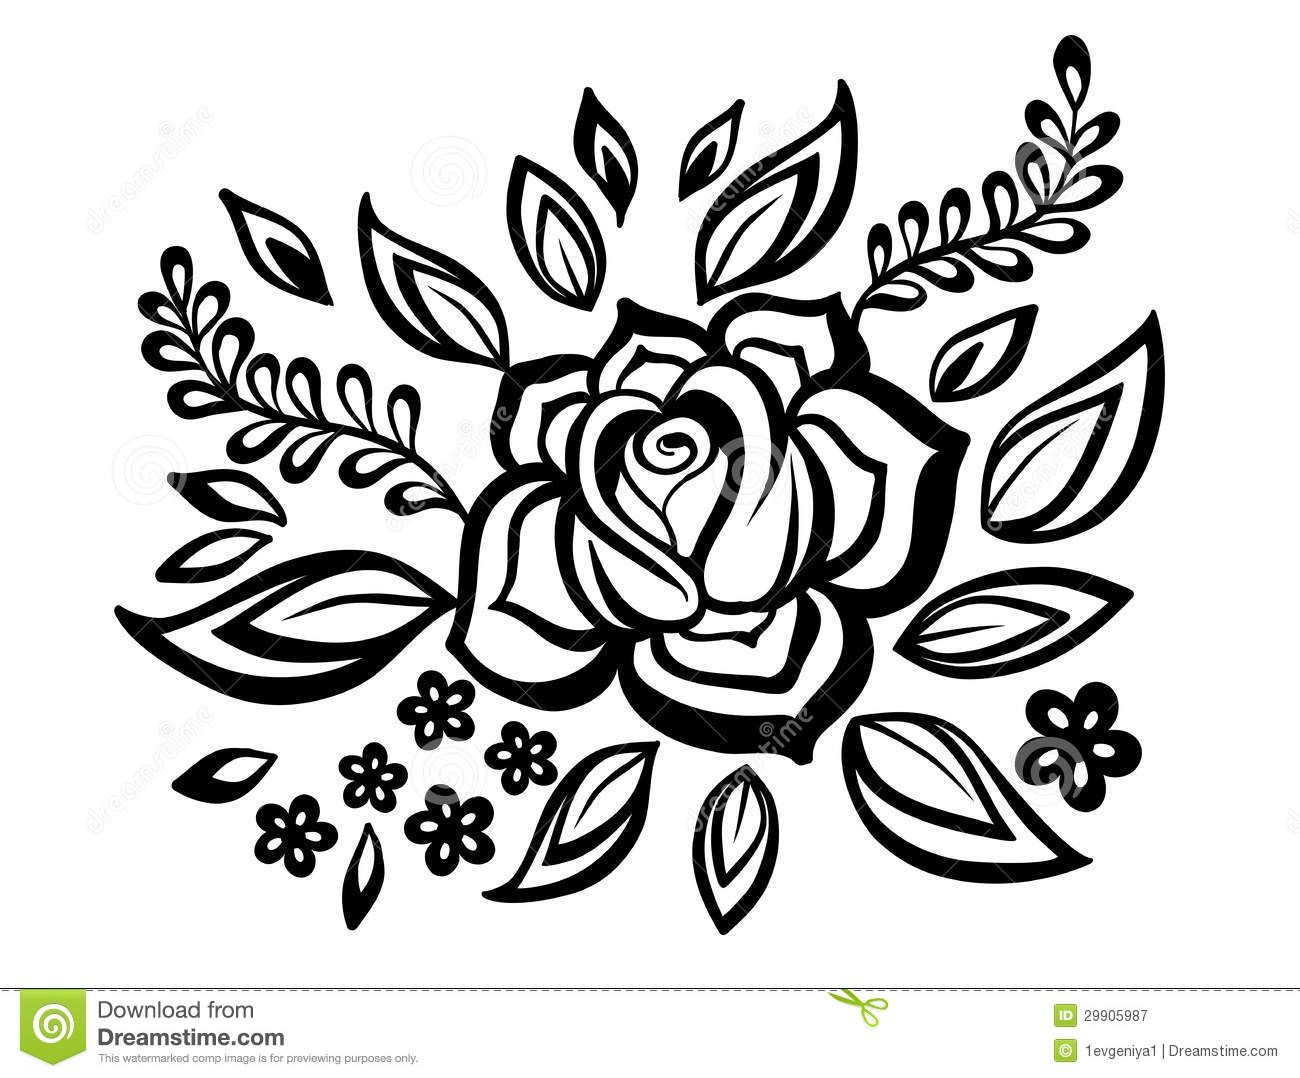 Blackandwhite flowers and leaves design element with